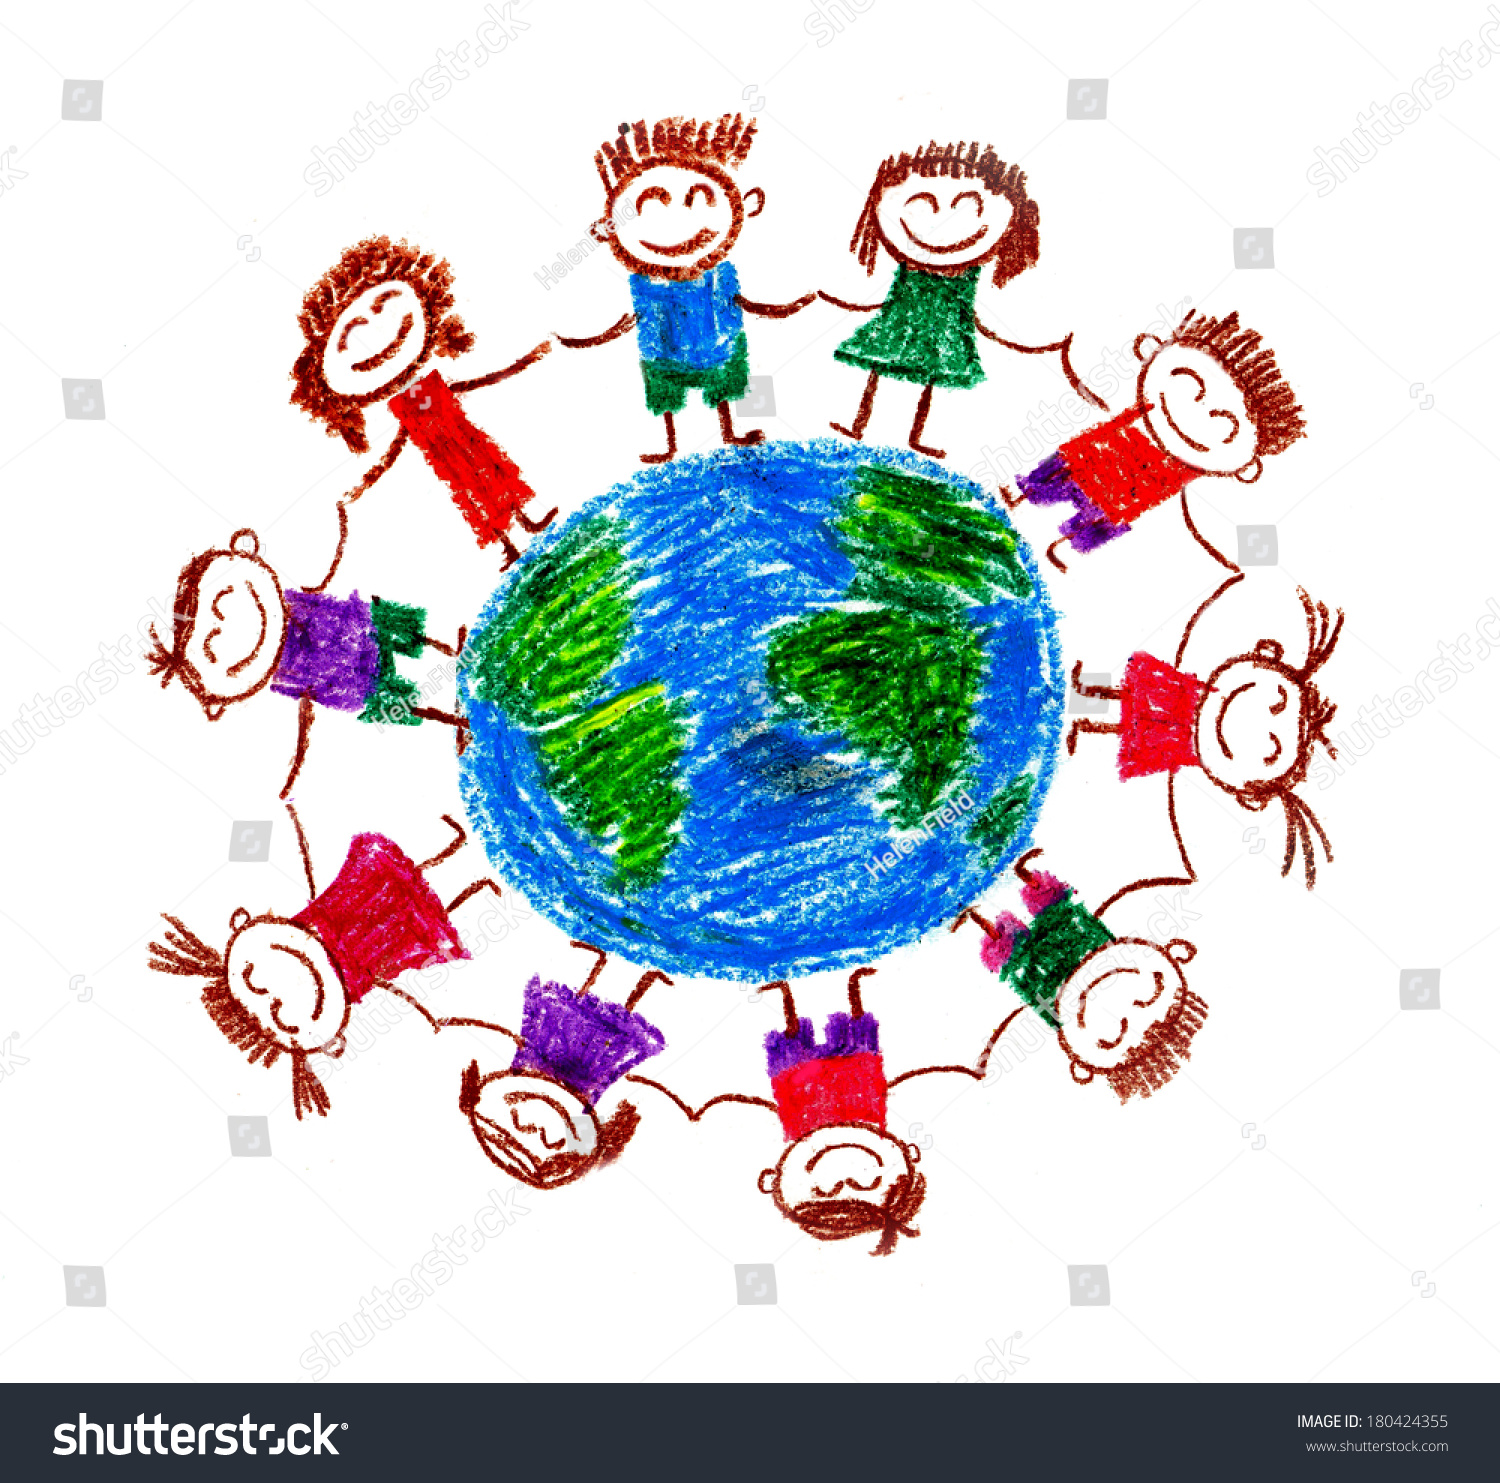 Royalty Free Stock Illustration Of Peace Earth Kids Drawings Stock